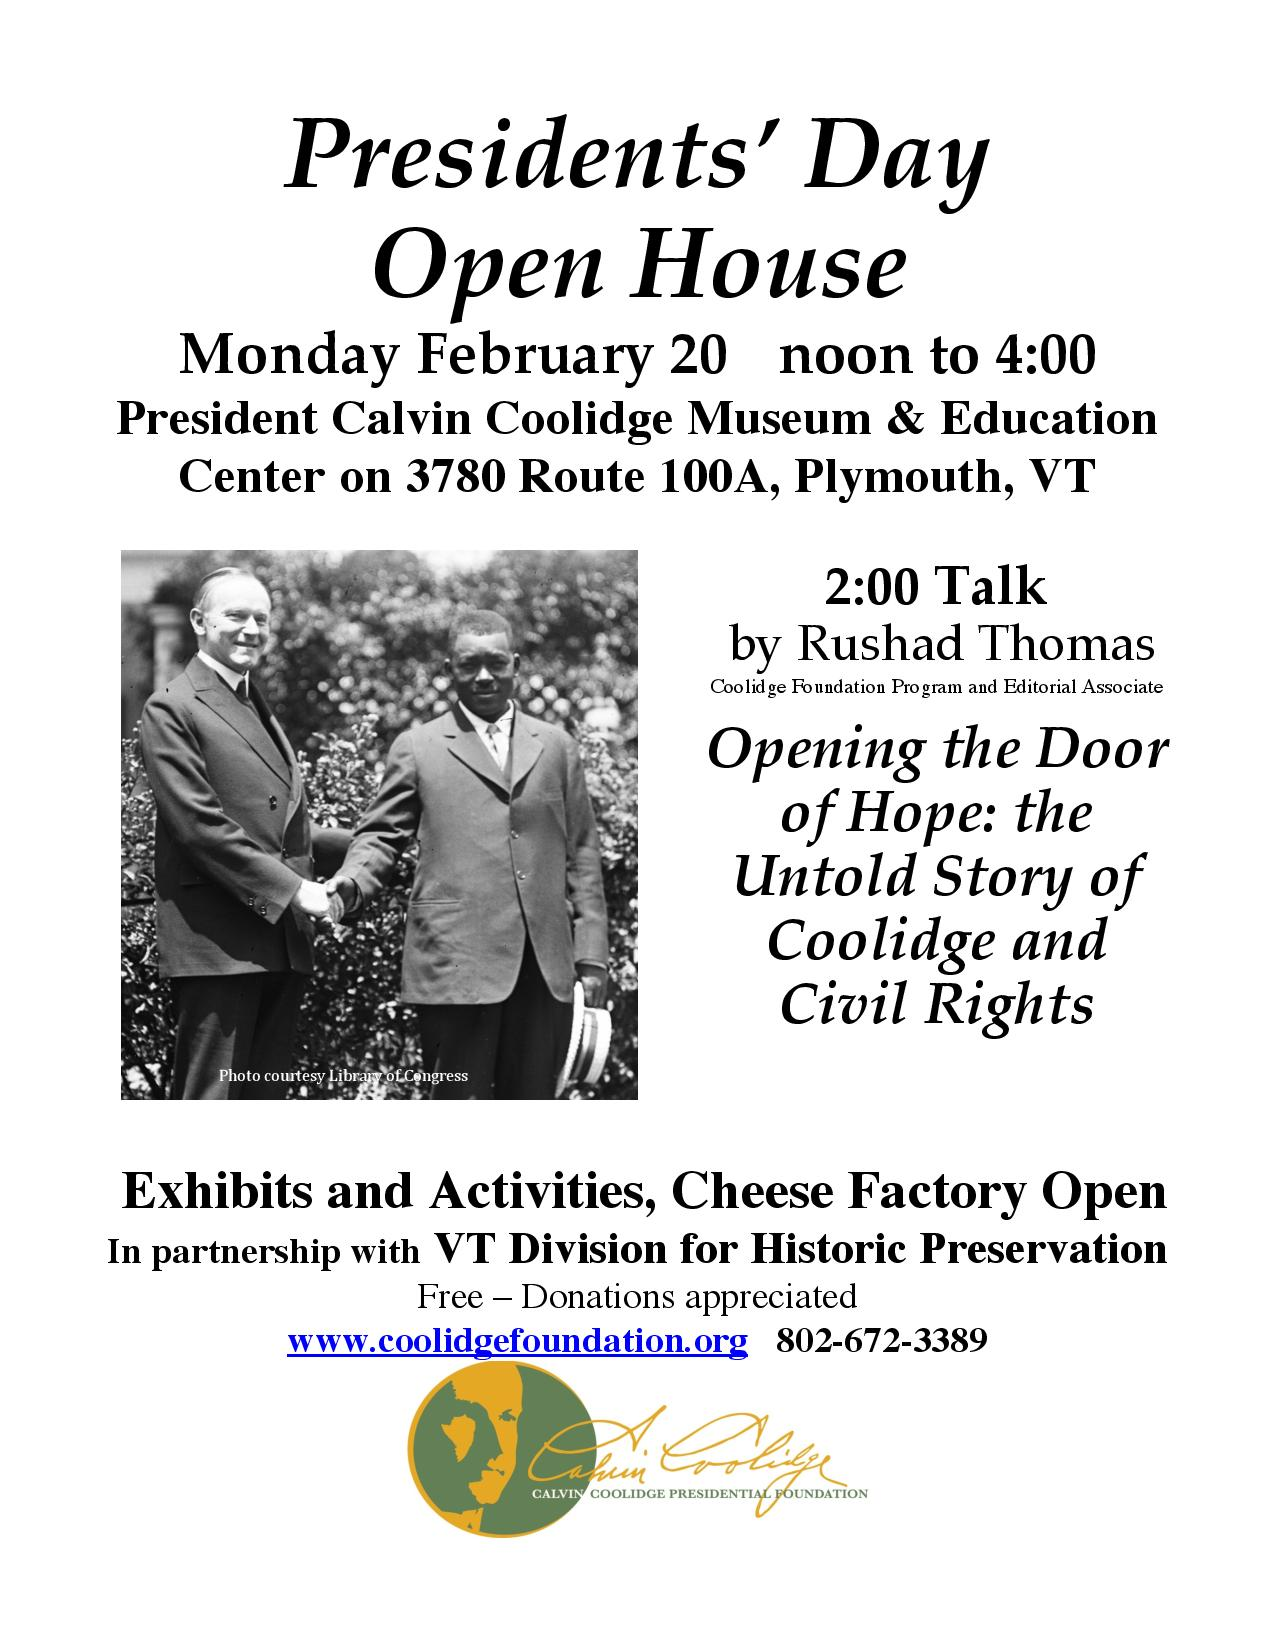 Presidents' Day Open House